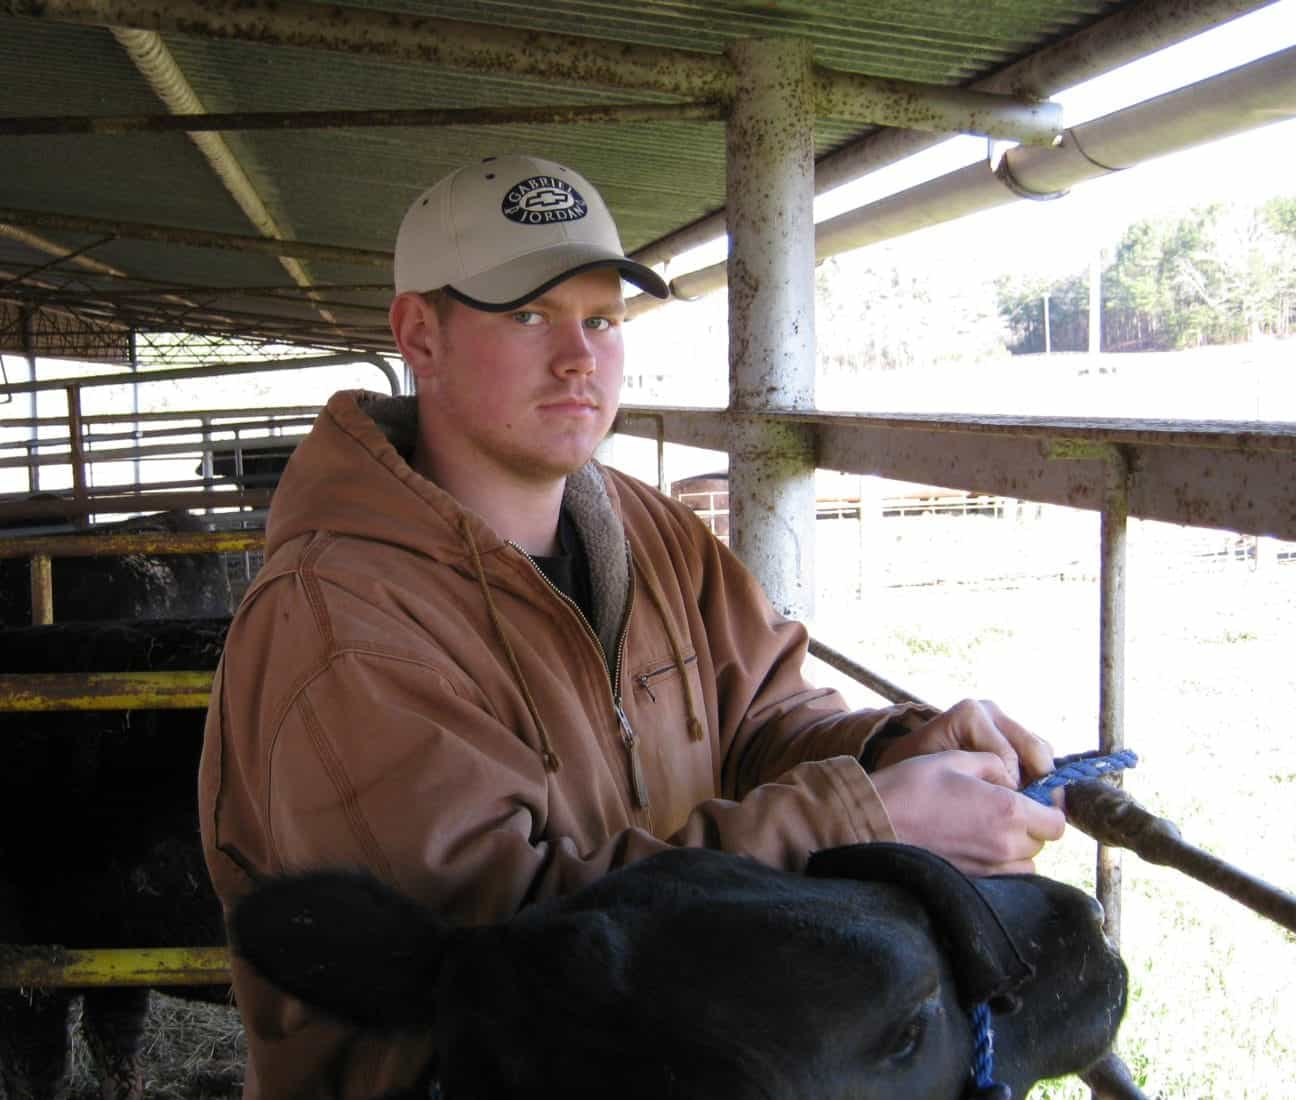 Micah Tinkle grew up in Woodville, a town of 2,415 in east Texas. His grandfather owned a farm.